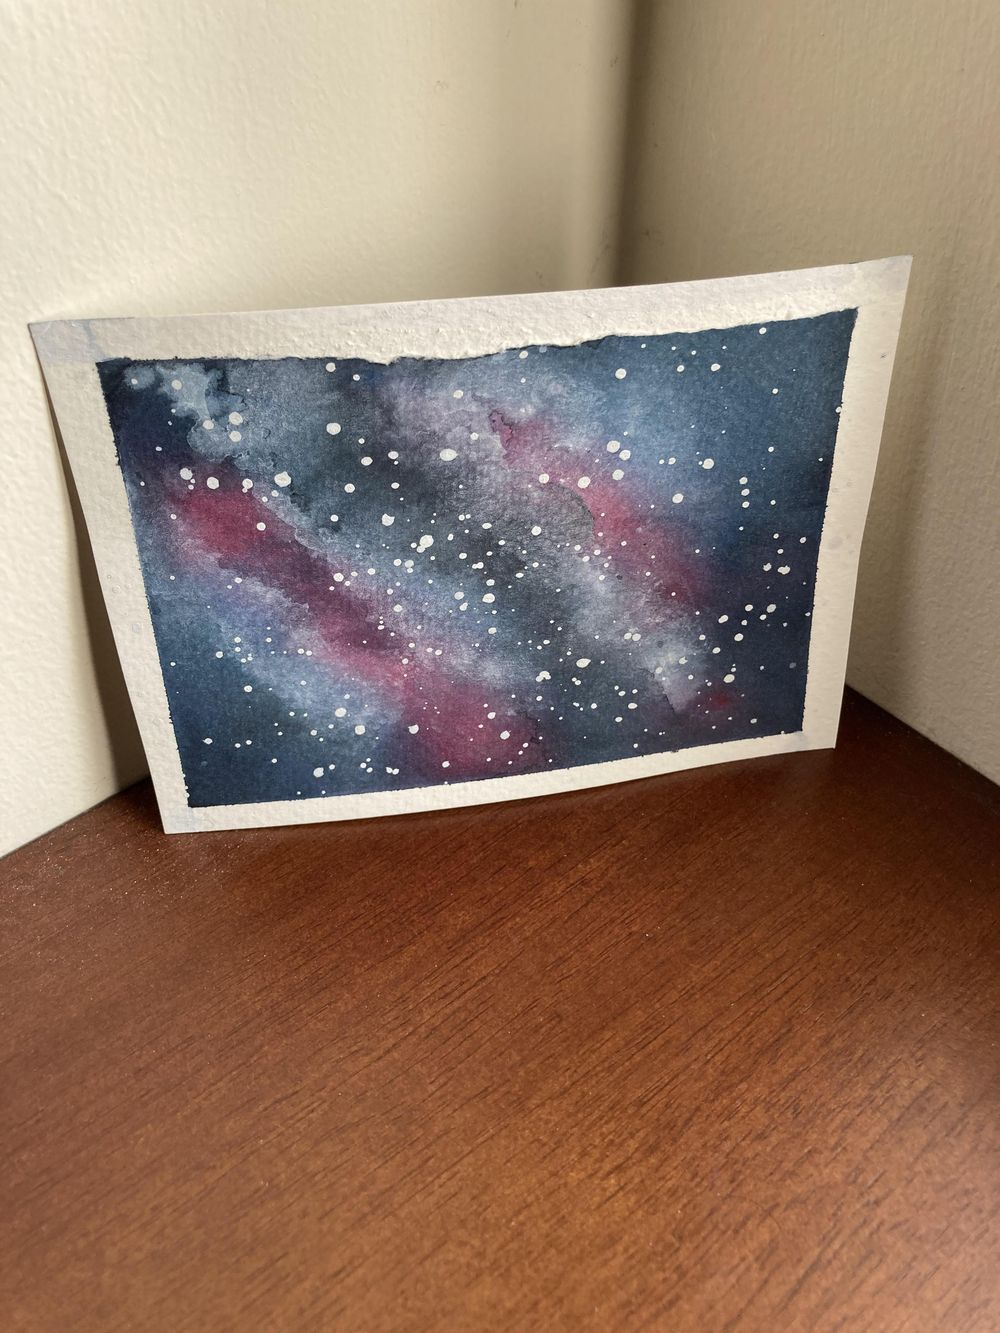 Galaxy Shapes - Vortex, Nebula, Spiral and Milky Way - image 1 - student project